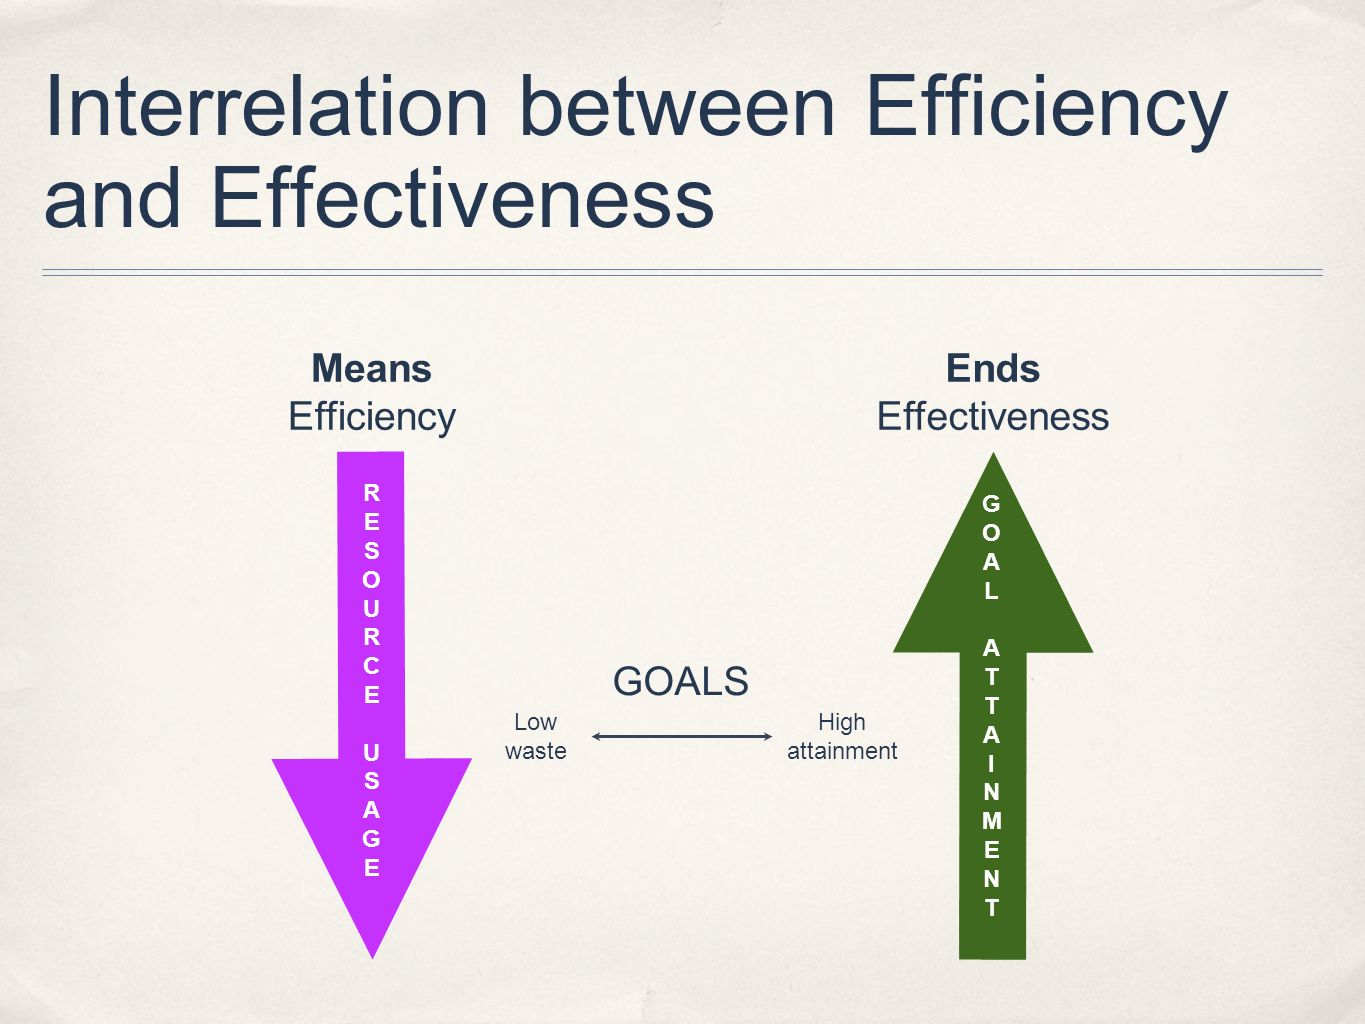 Interrelation between Efficiency and Effectiveness